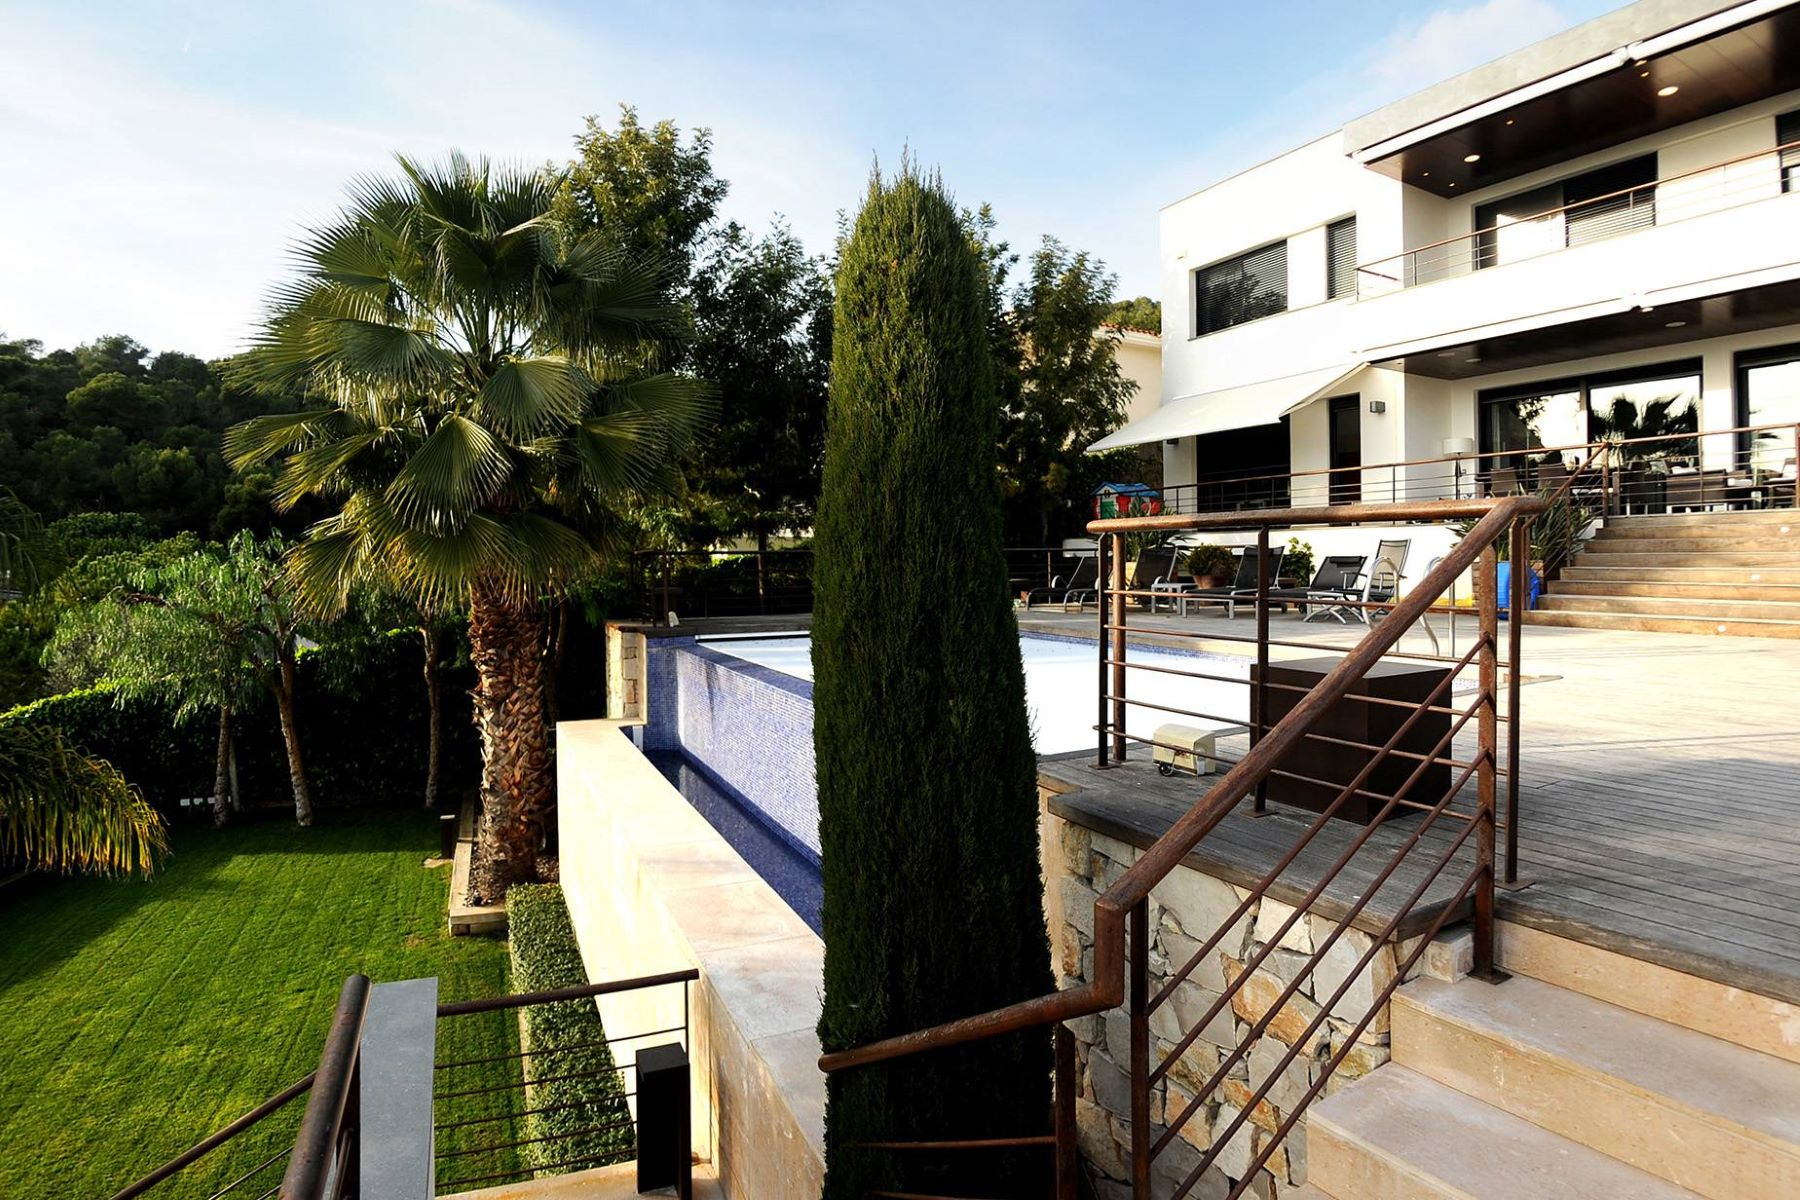 Single Family Home for Sale at Design House in Can Girona Sitges, Barcelona, 08870 Spain